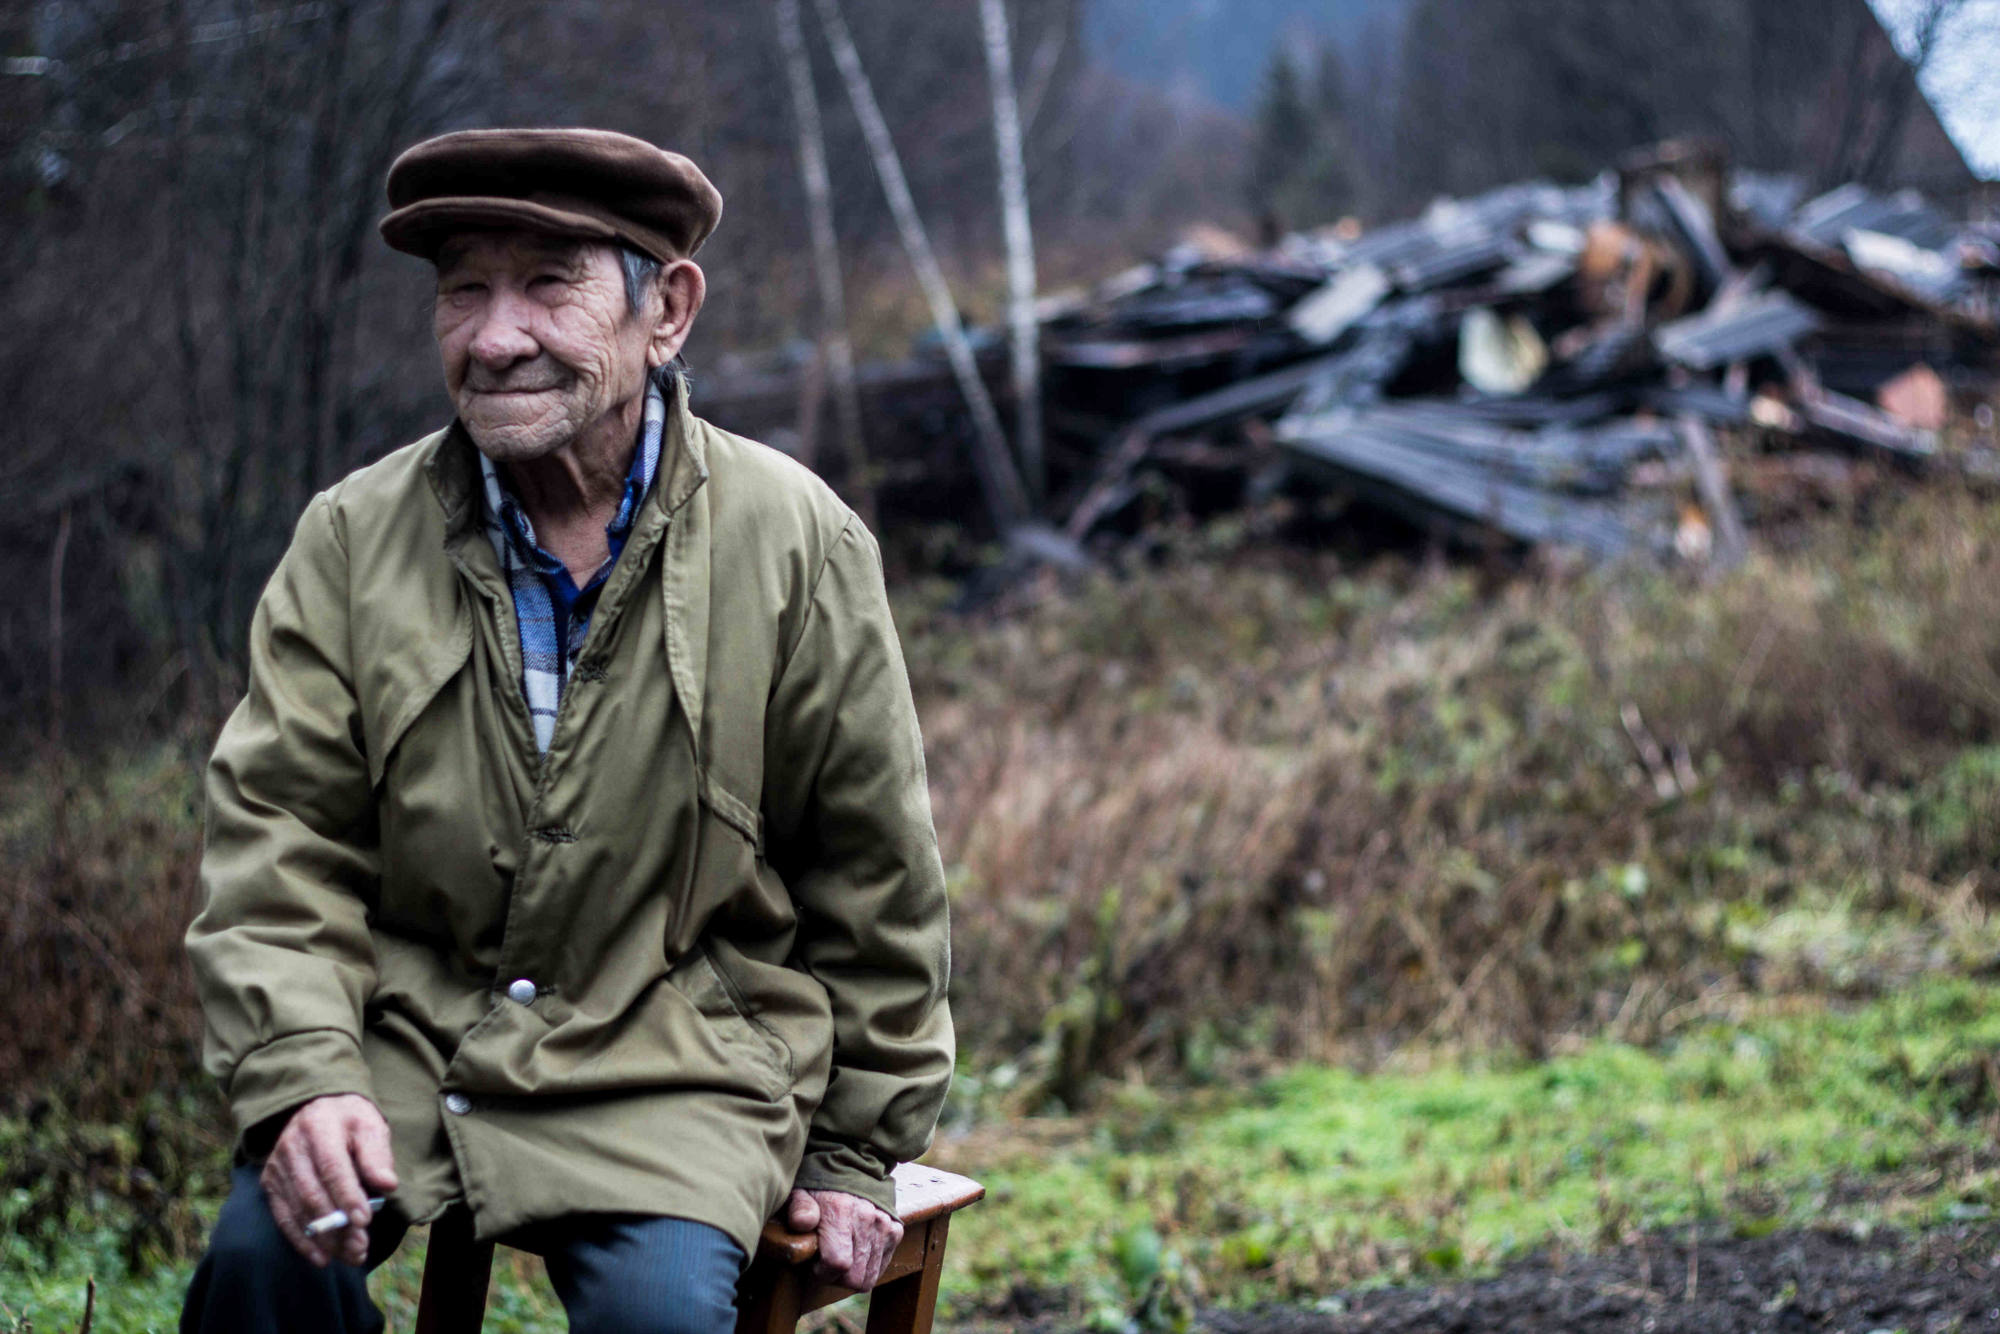 Ditch Coal Speaking Tour: the realities of coal mining in Russia – 25 May to 10 June